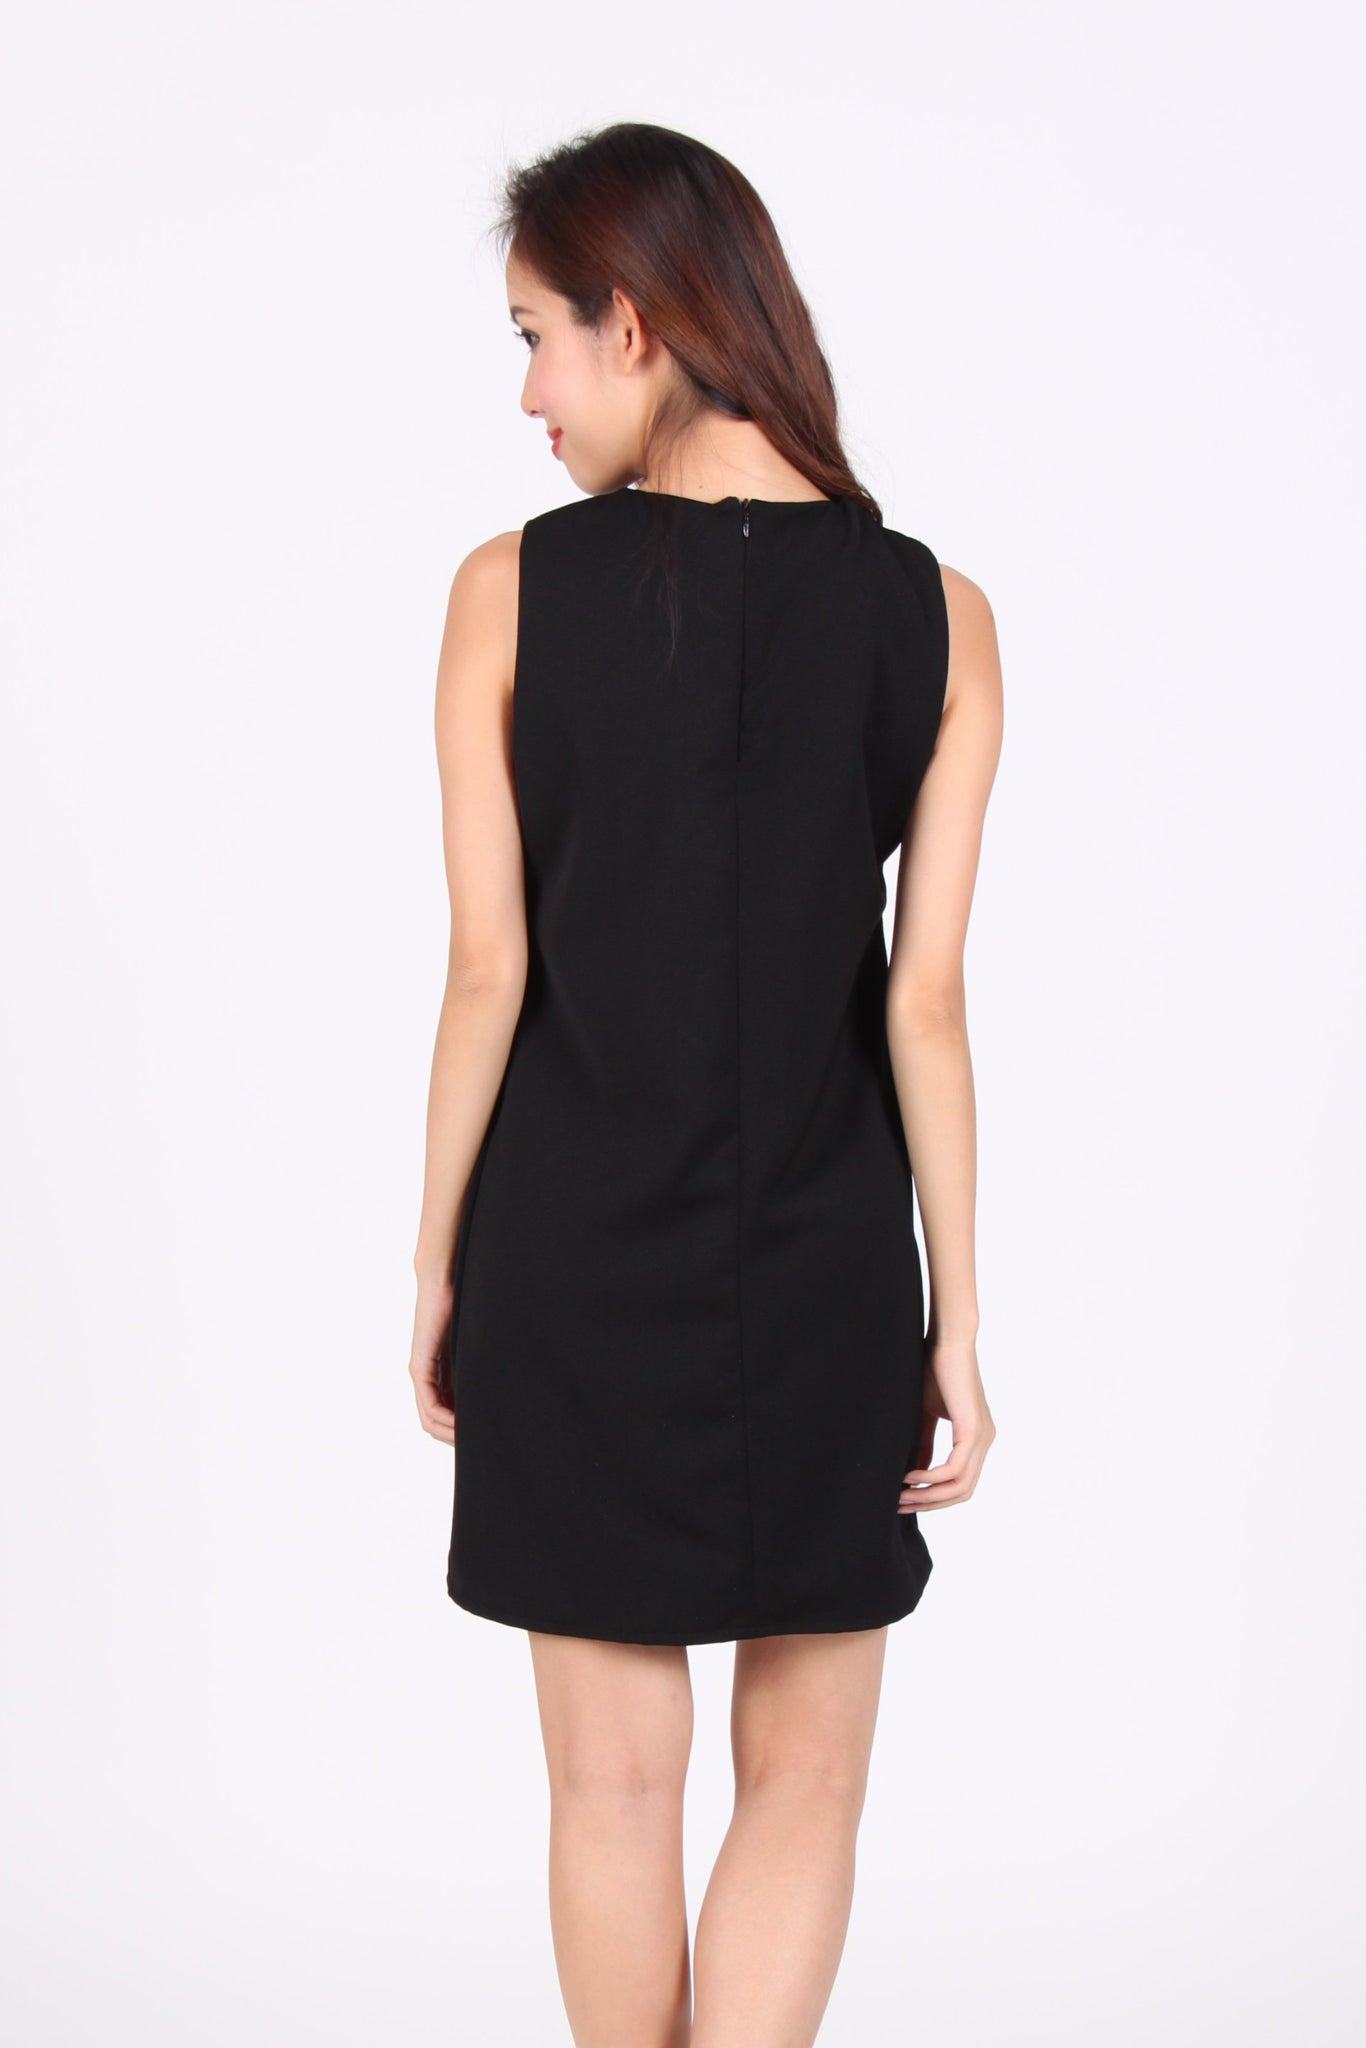 Bow Alike Sleeveless Shift Dress in Black